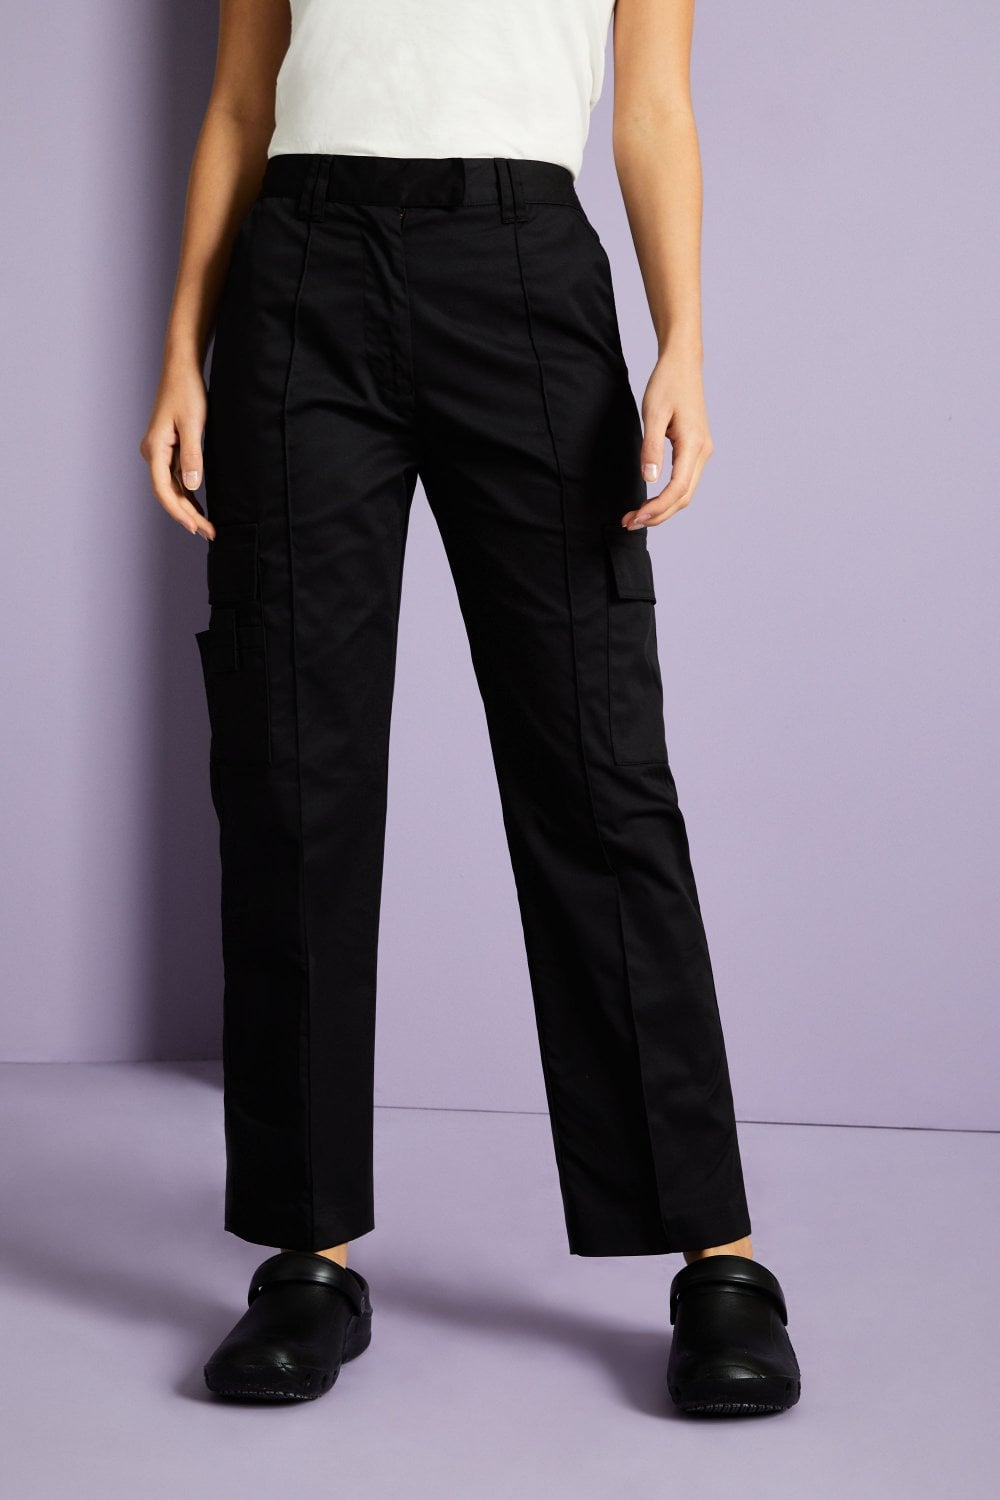 finest fabrics watch limited style Benchmark Women's Classic Cargo Trousers